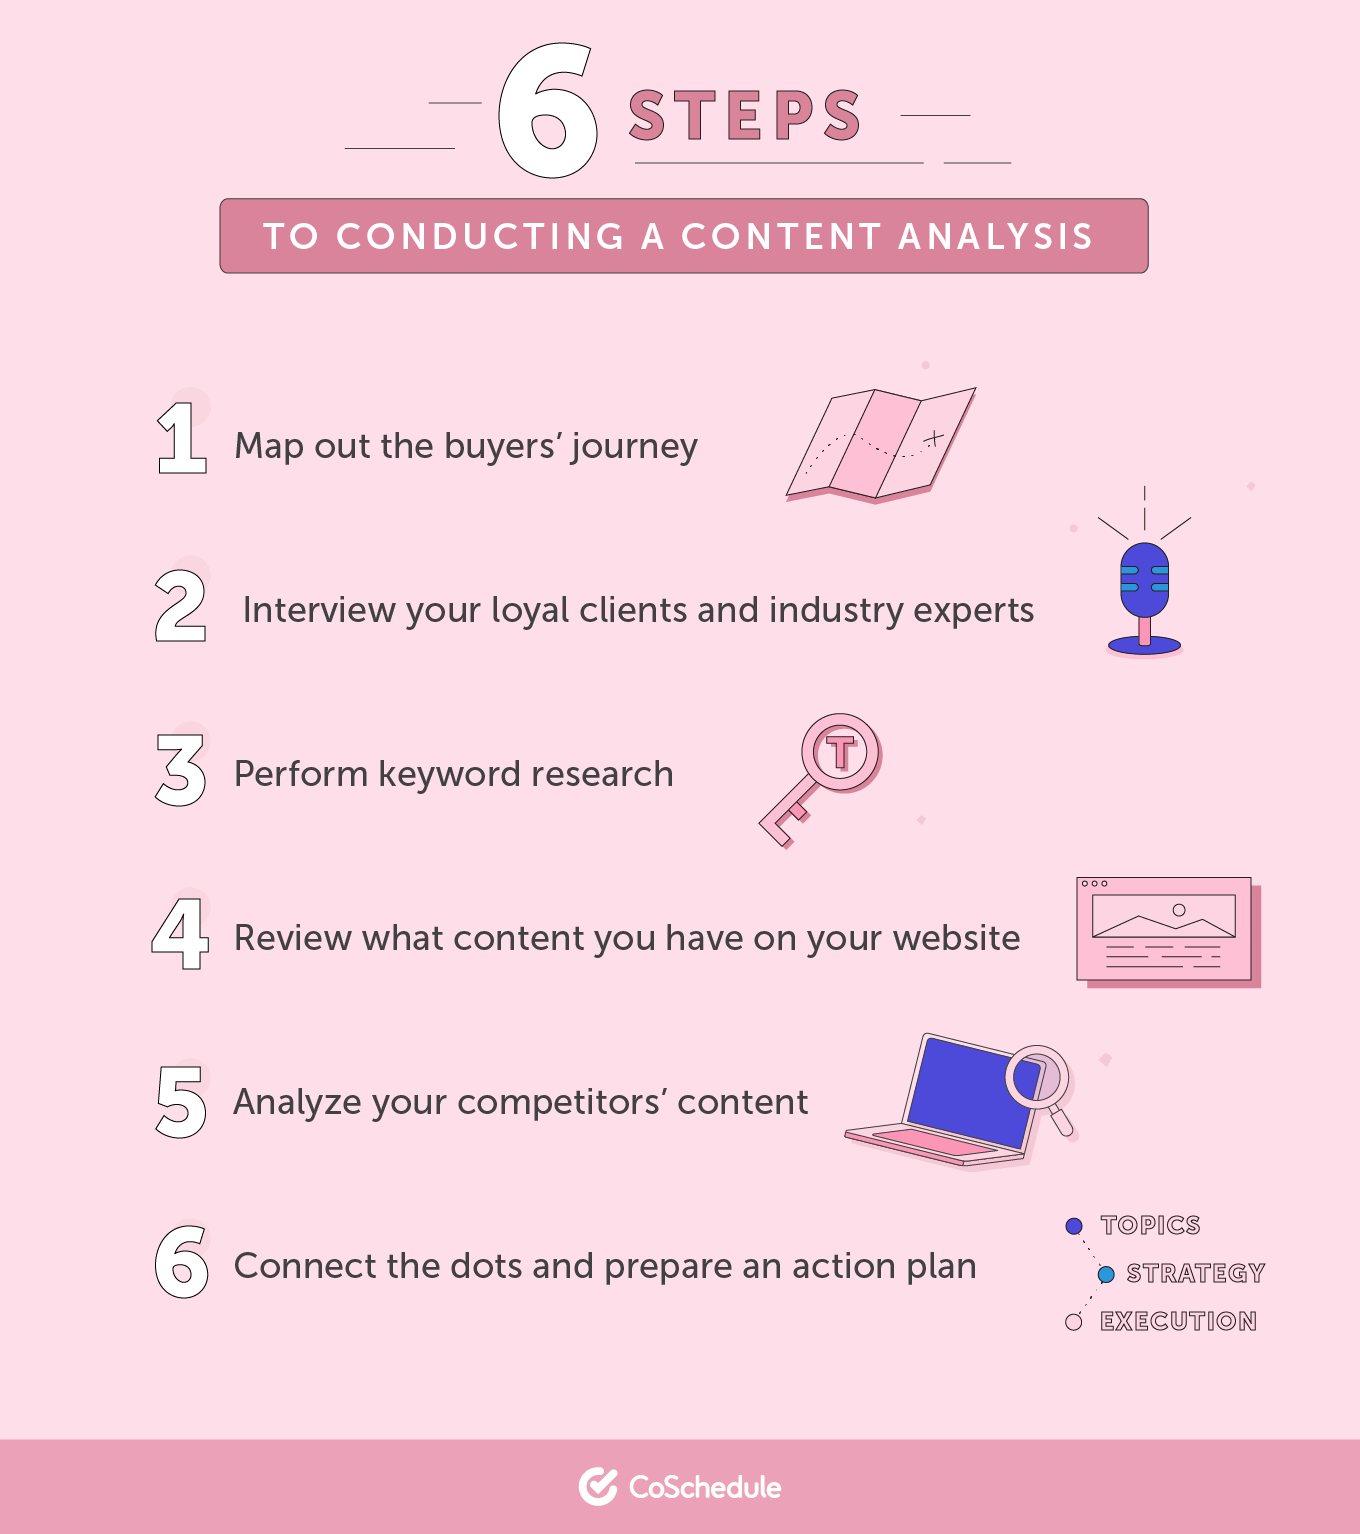 A list of six different steps on conducting content analysis